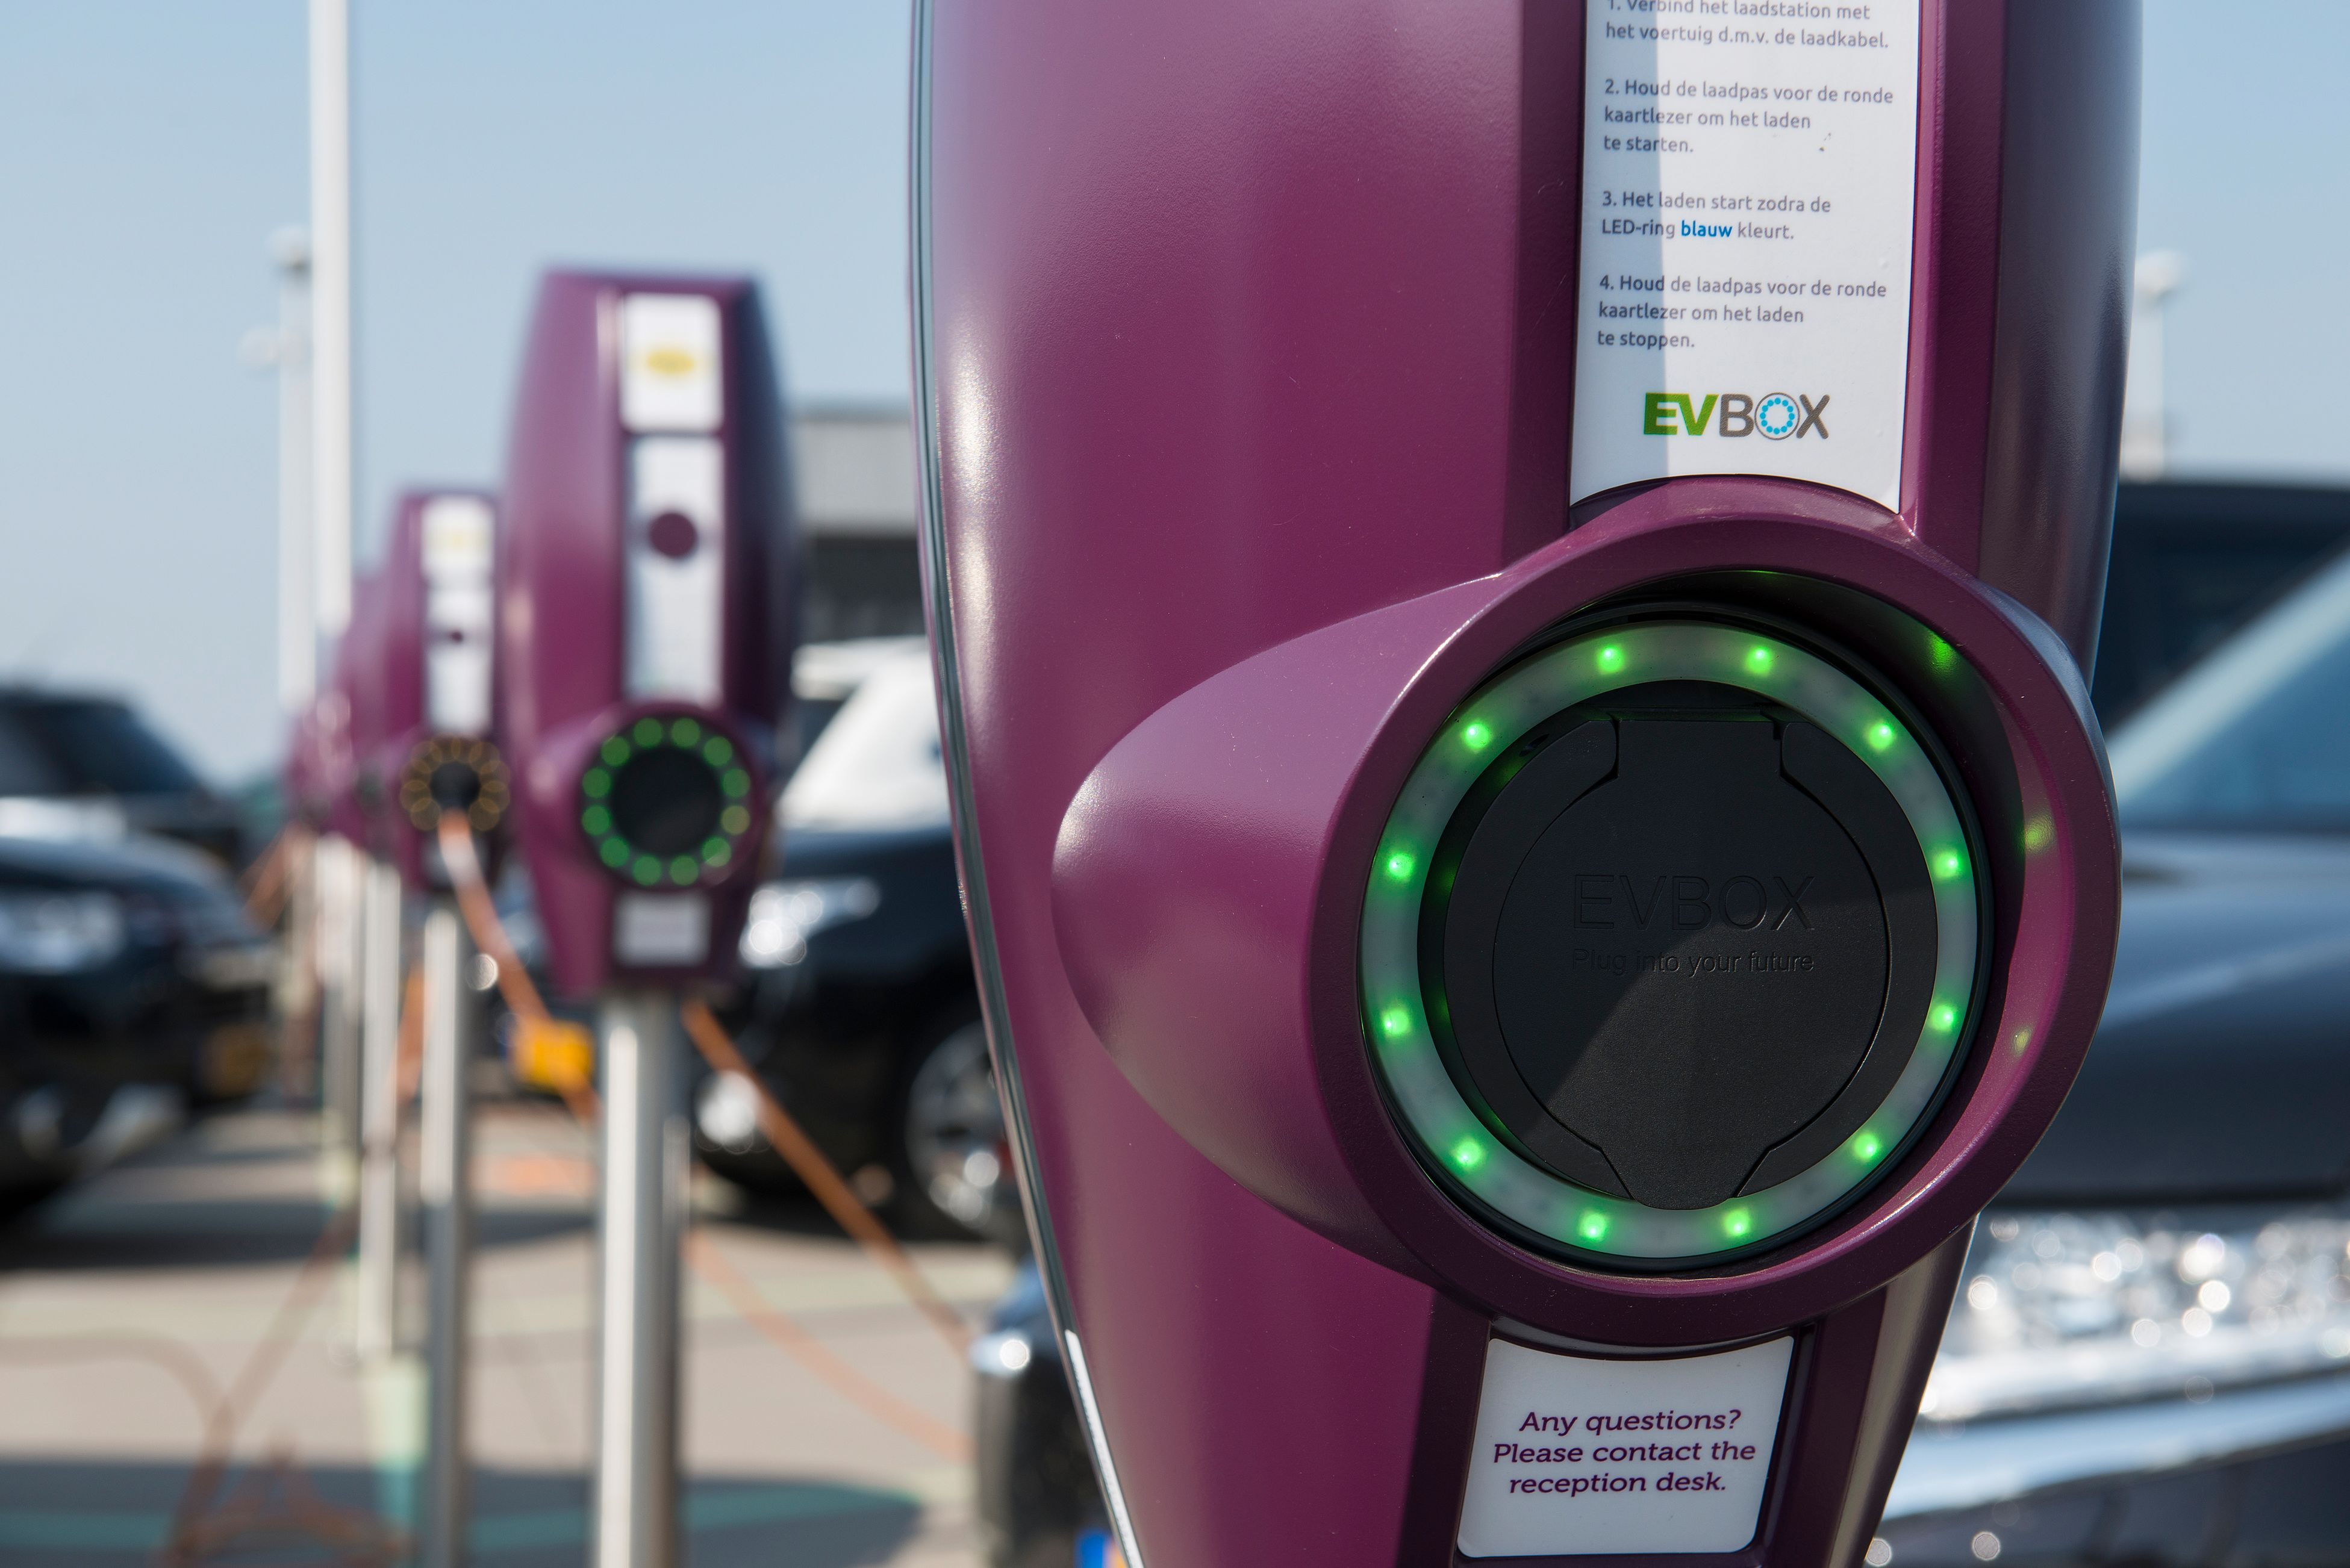 Up to €600 grant for an Electric Vehicle charger